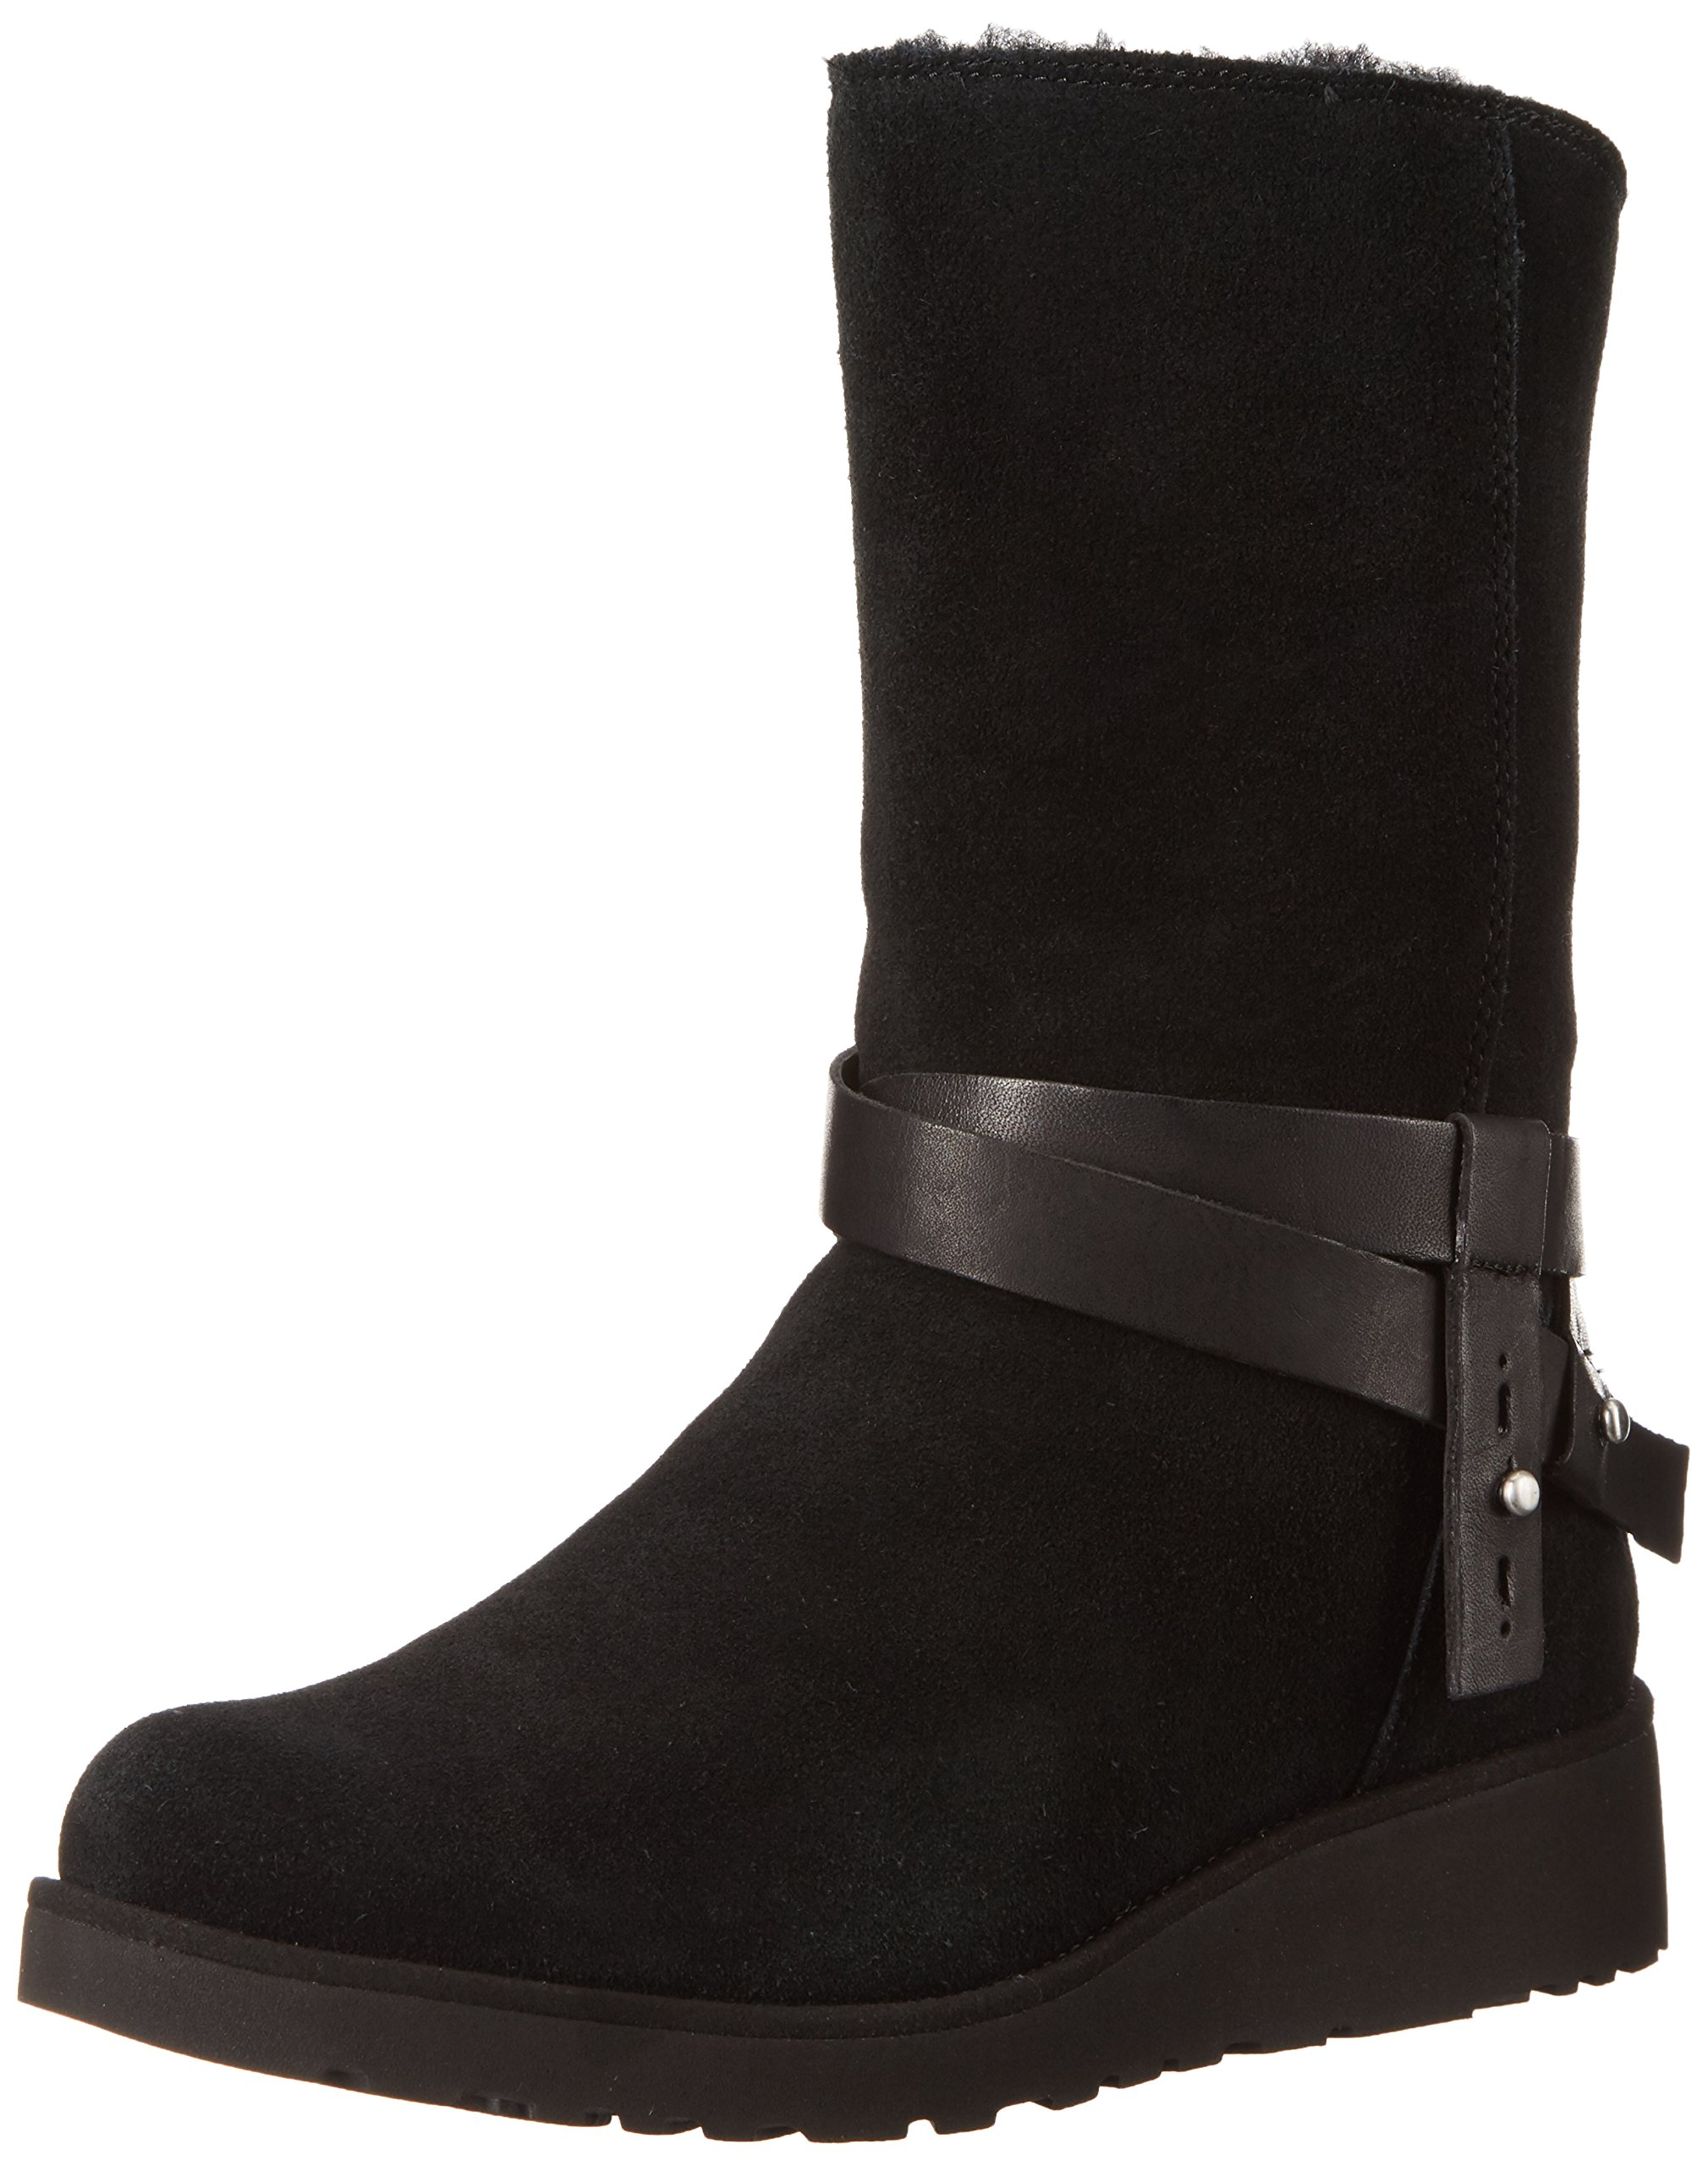 UGG Women's Aysel Winter Boot, Black, 12 M US